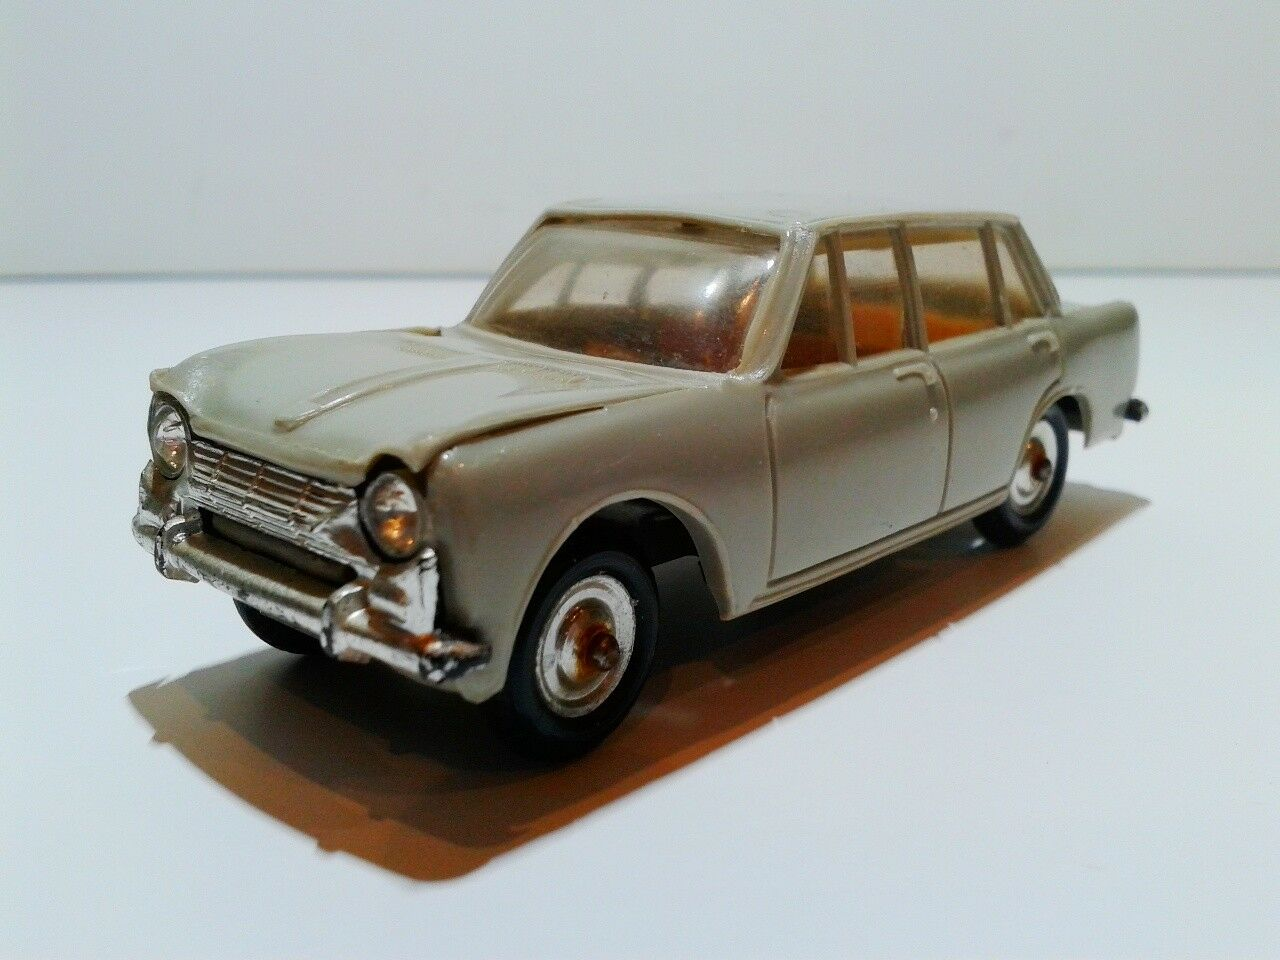 MINIALUXE France 1 43 Simca 1300 Sedan plastic grey color